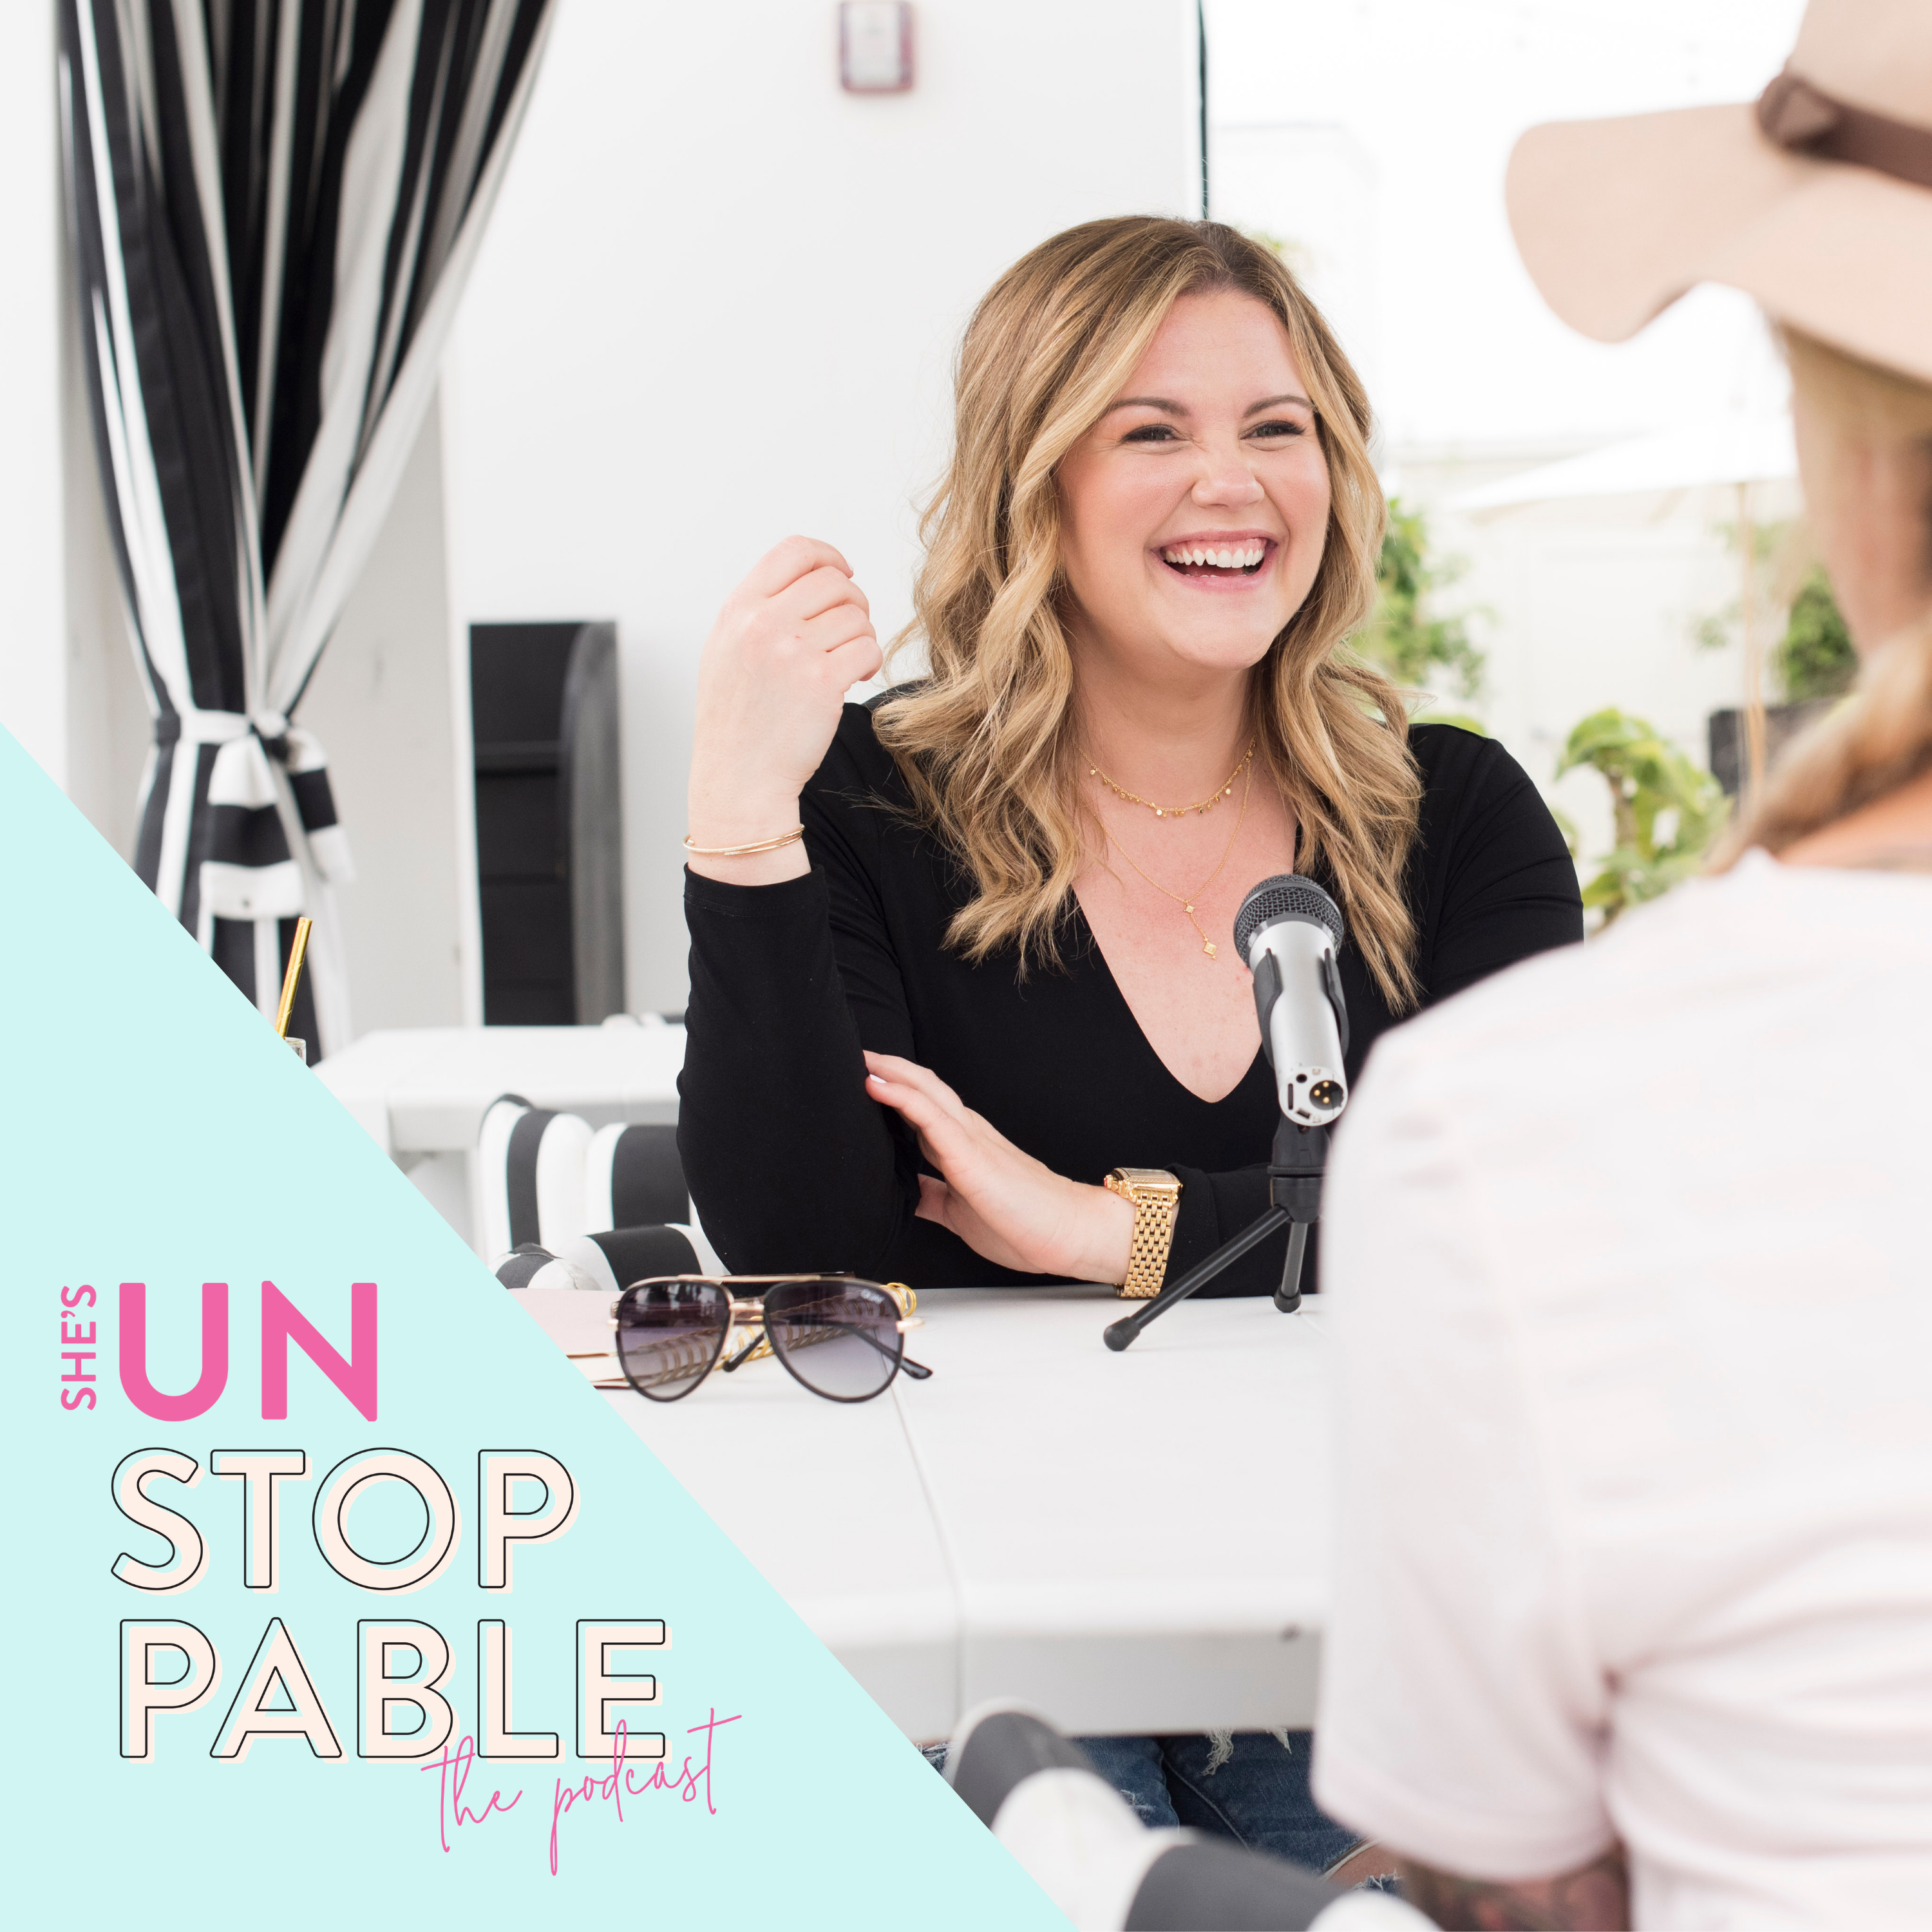 She's Unstoppable: The Podcast